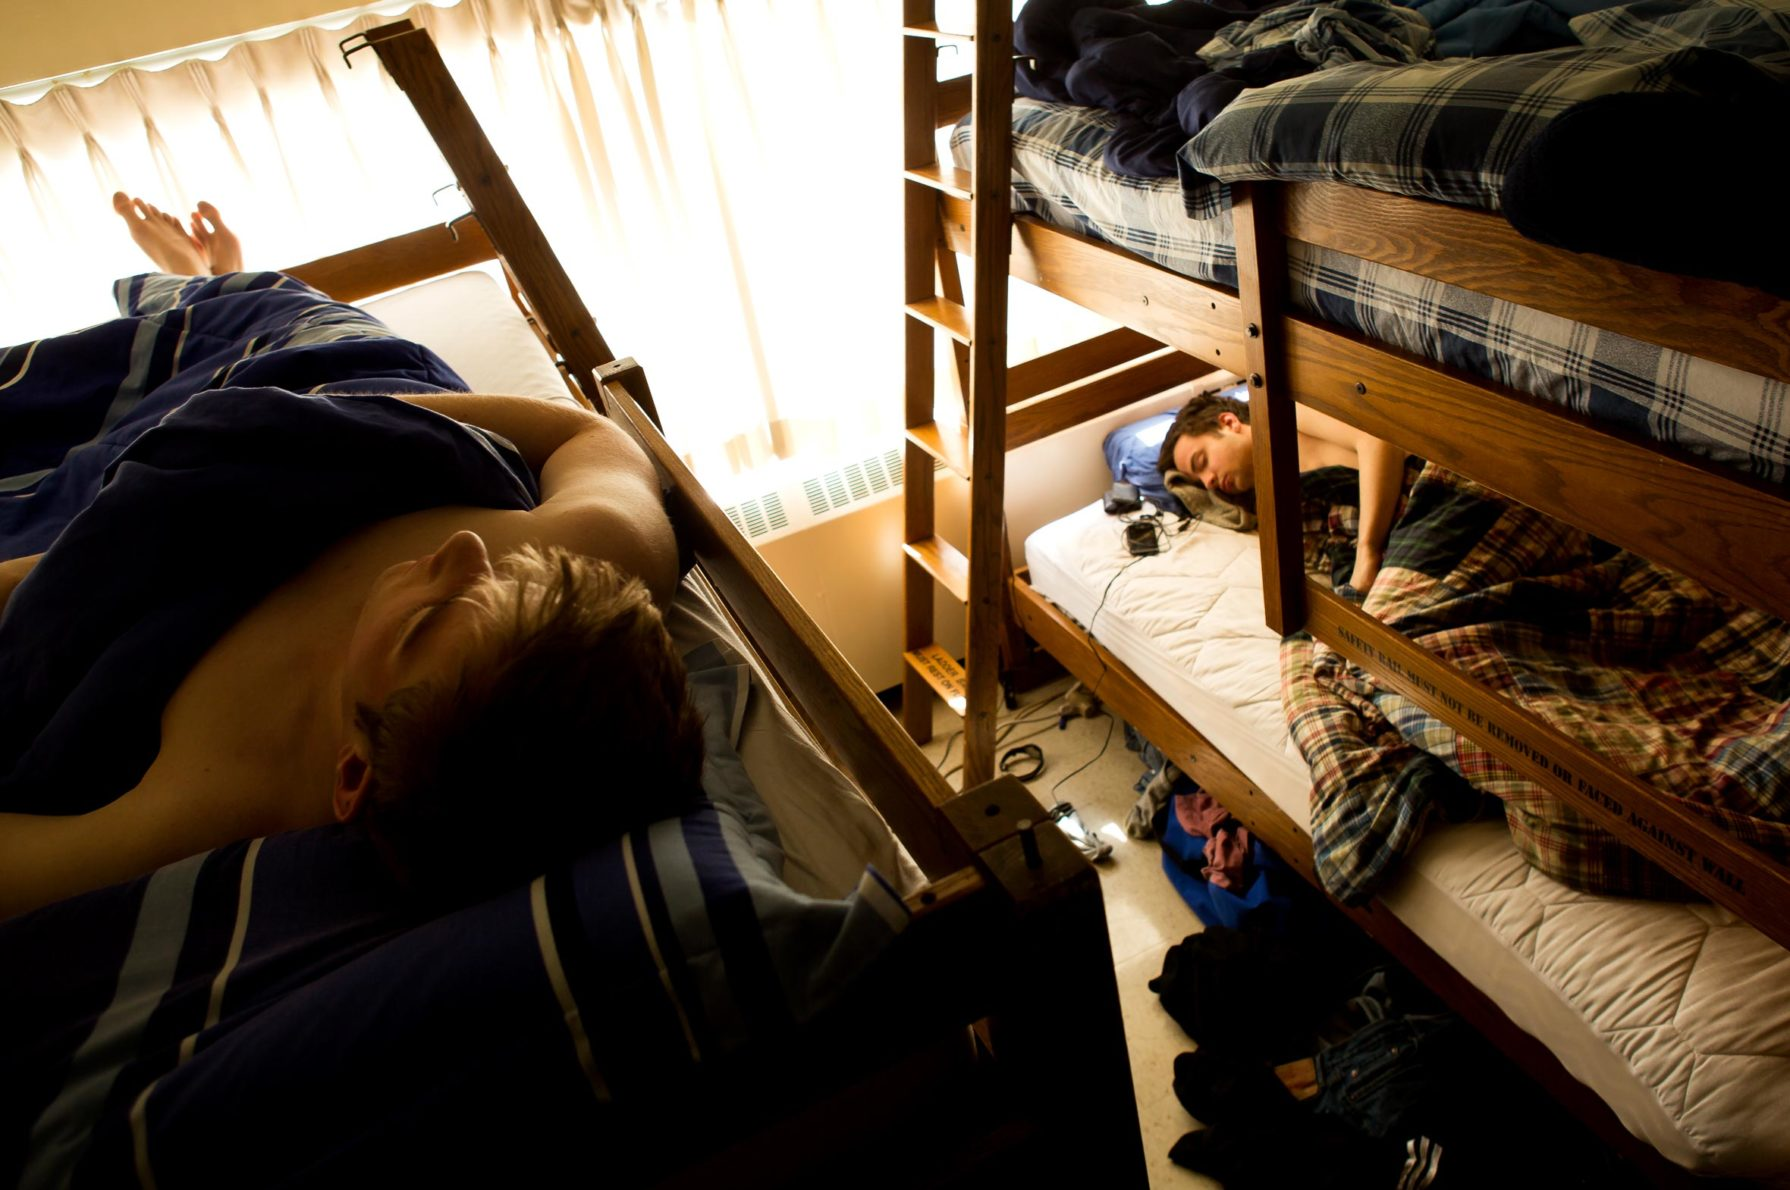 Students sleeping in bunkbeds